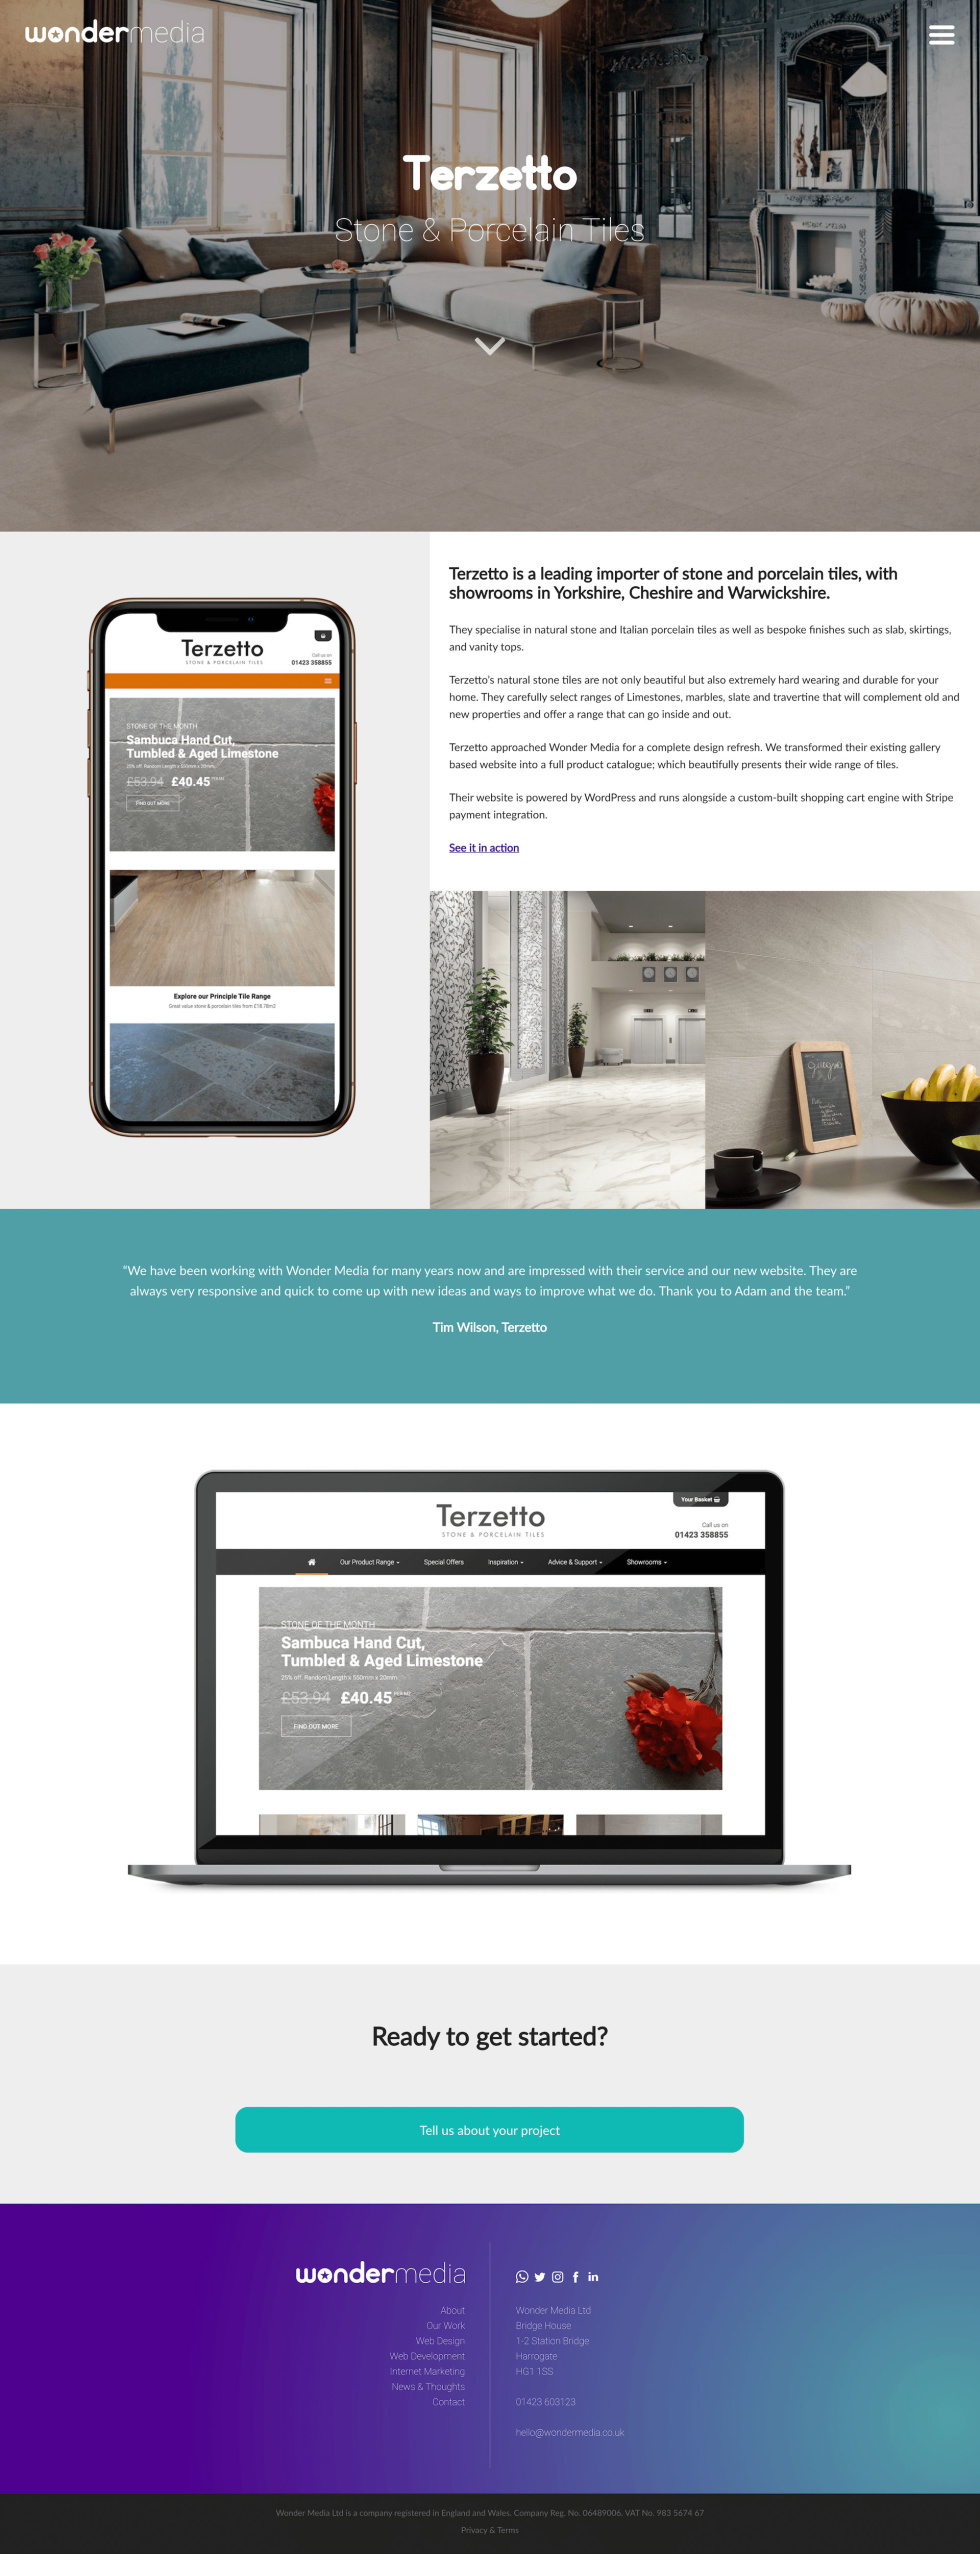 Email template. Page can be split into six parts. At the top, image of modern living room slightly faded. White logo at the center of the image. Below, iPhone screen displays different photos of tile, the product that is being sold. To the right of the iPhone, a small paragraph with black lowercase text against a white background. Below the text, two photos of showing off tiles within an office space and in a kitchen. Below the iPhone and text with accompanying images, another image of Apple MacBook to desktop version of website homepage. Below this laptop, green contact button along with more information and branding.